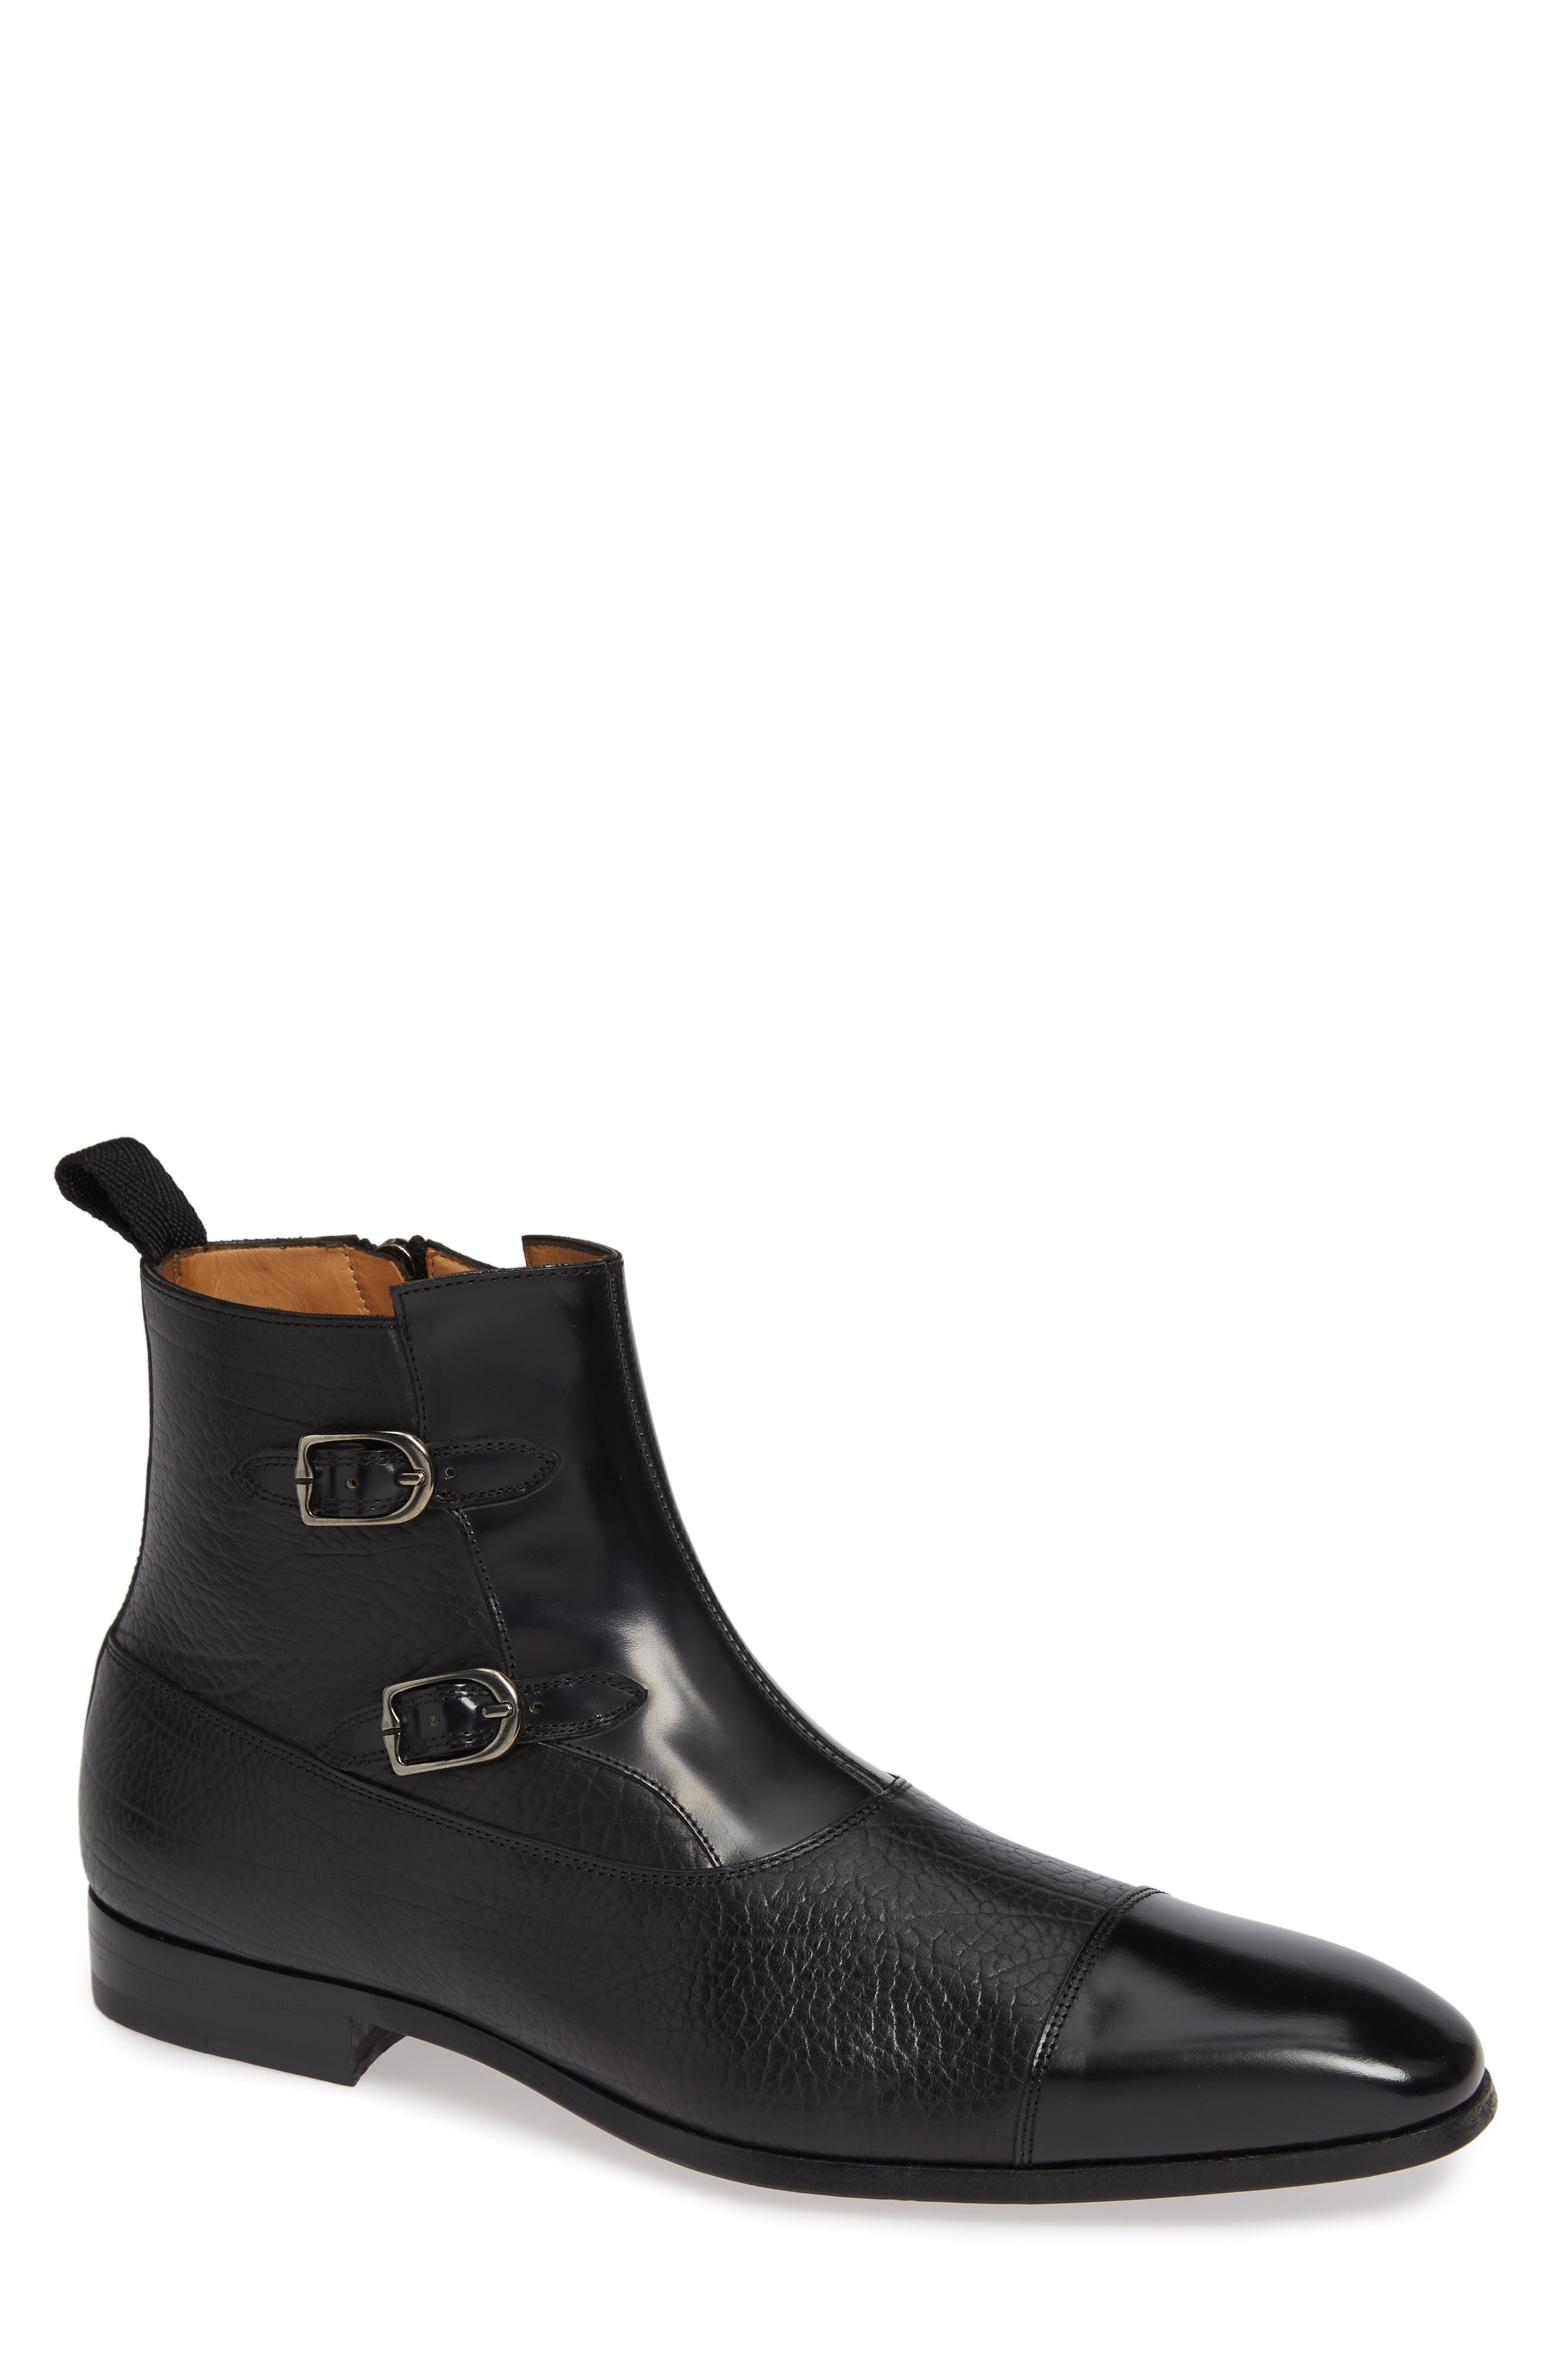 Tracy Double Buckle Cap Toe Boot,                             Main thumbnail 1, color,                             BLACK LEATHER